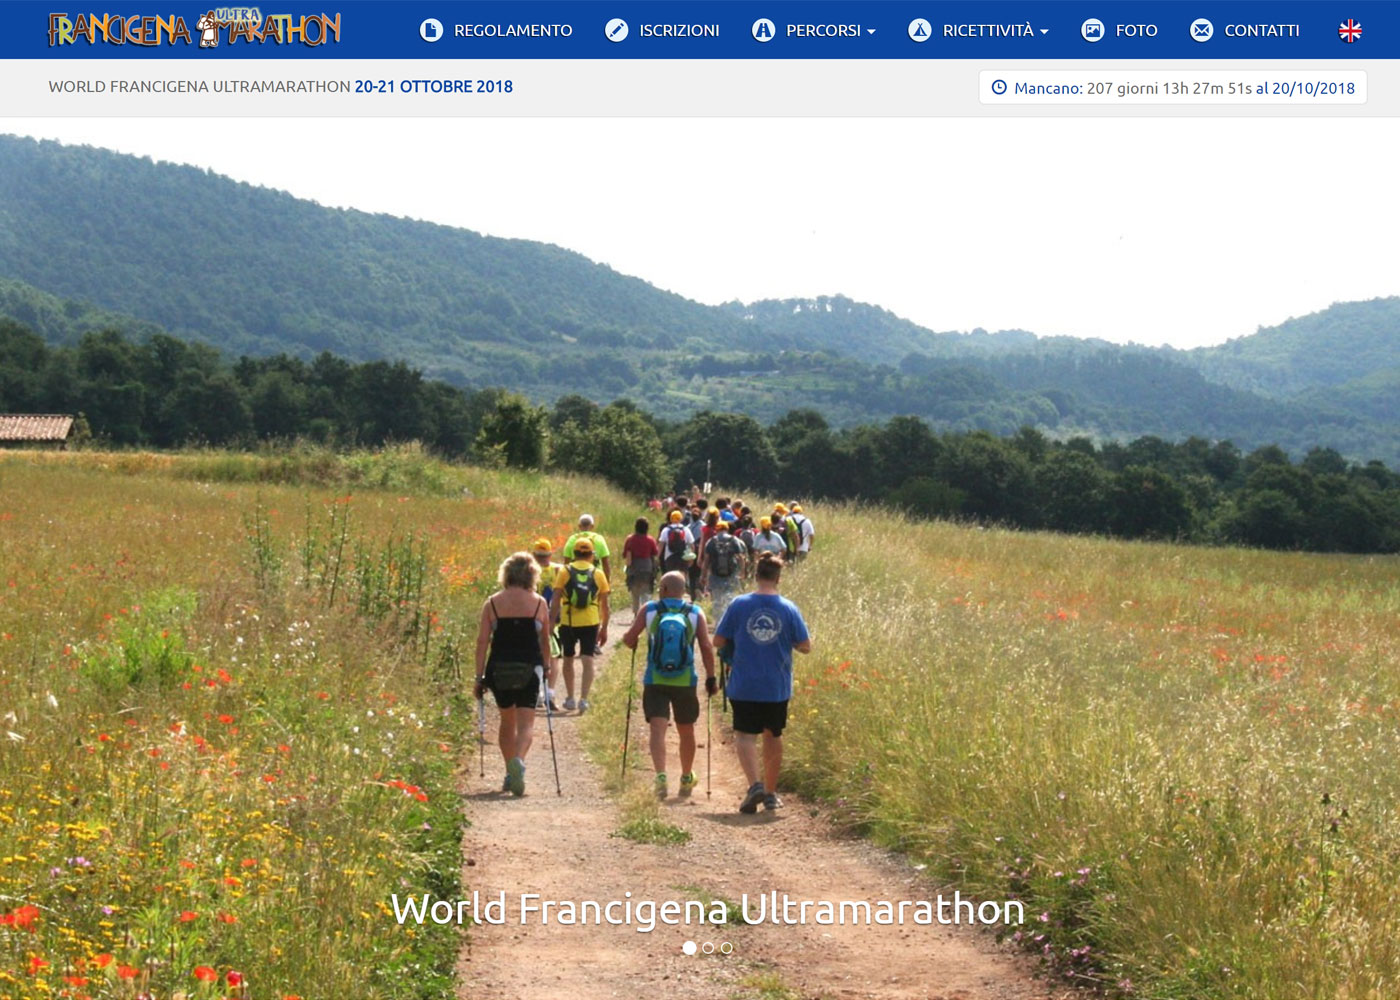 WORLD FRANCIGENA ULTRAMARATHON